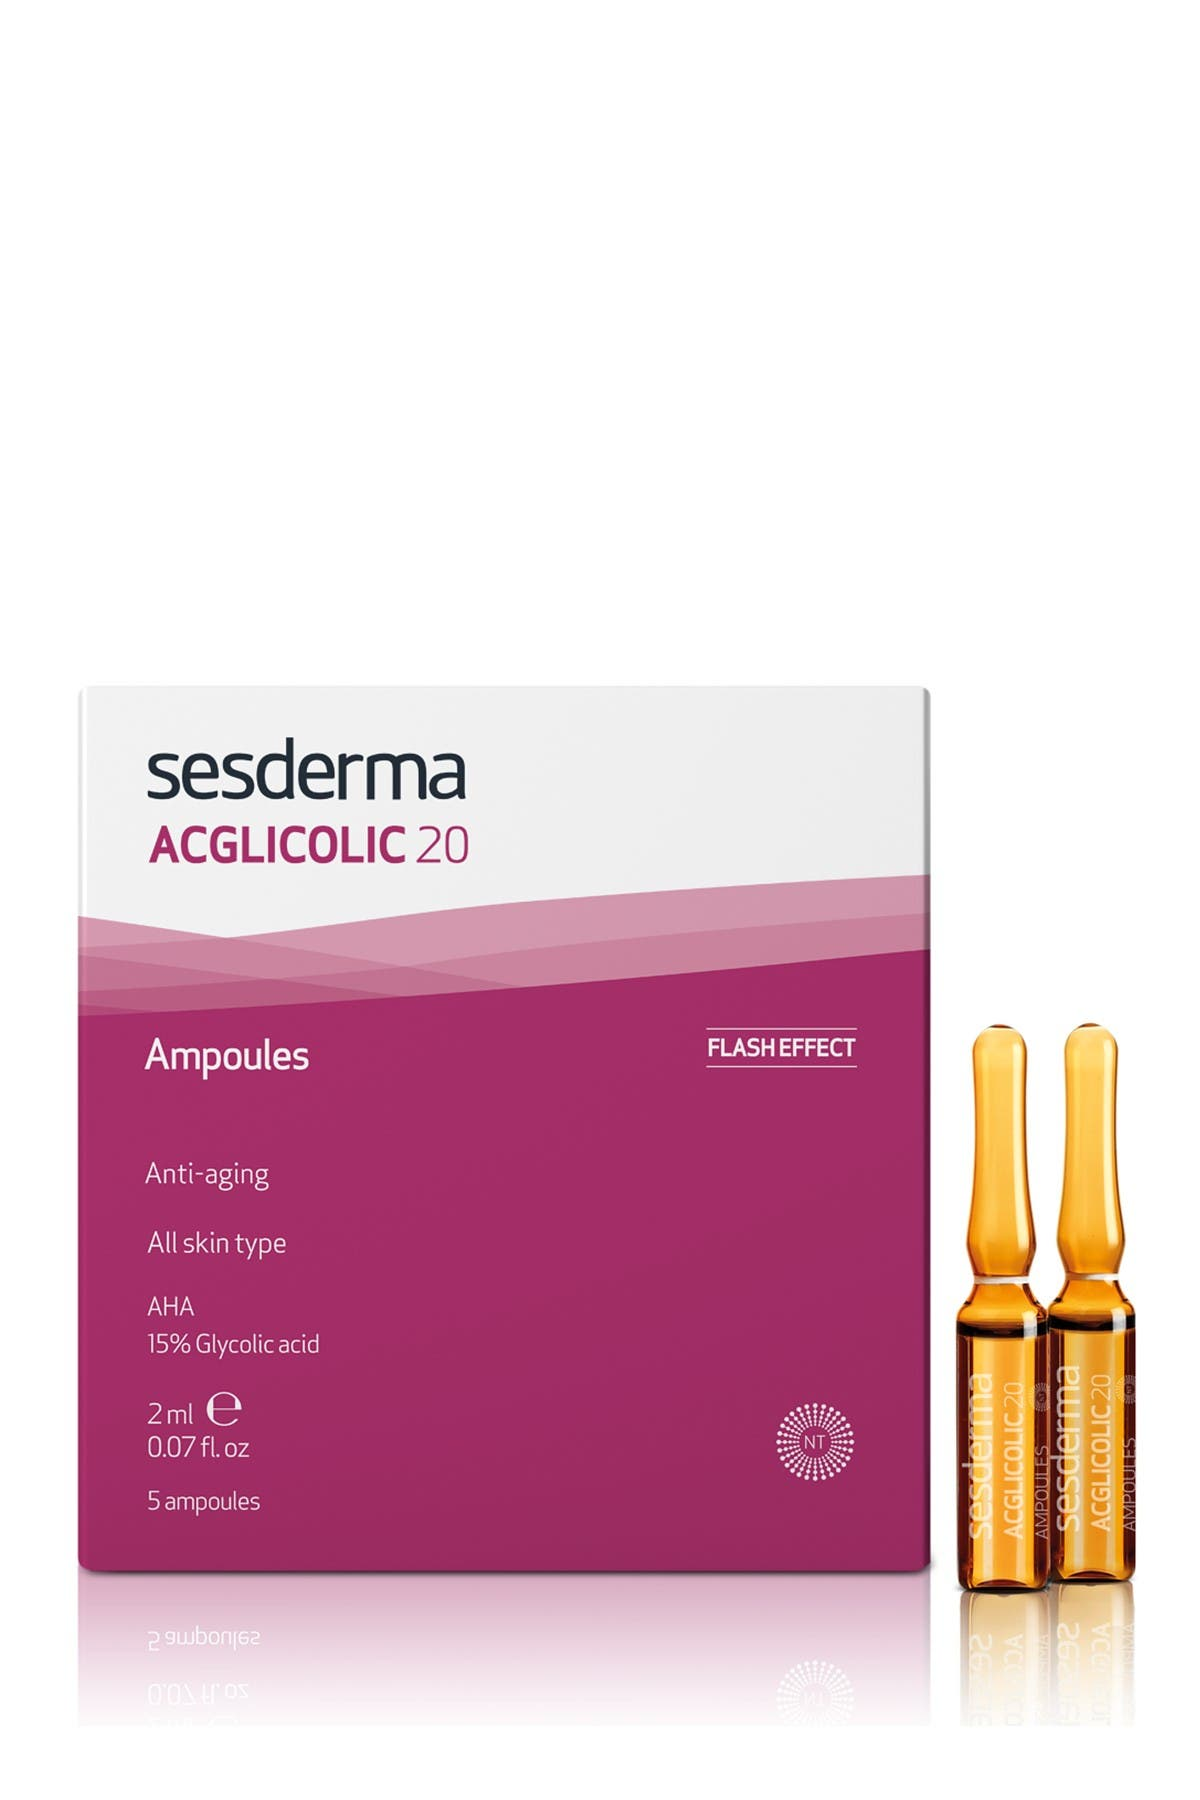 Image of Sesderma ACGLICOLIC 20 Ampoules